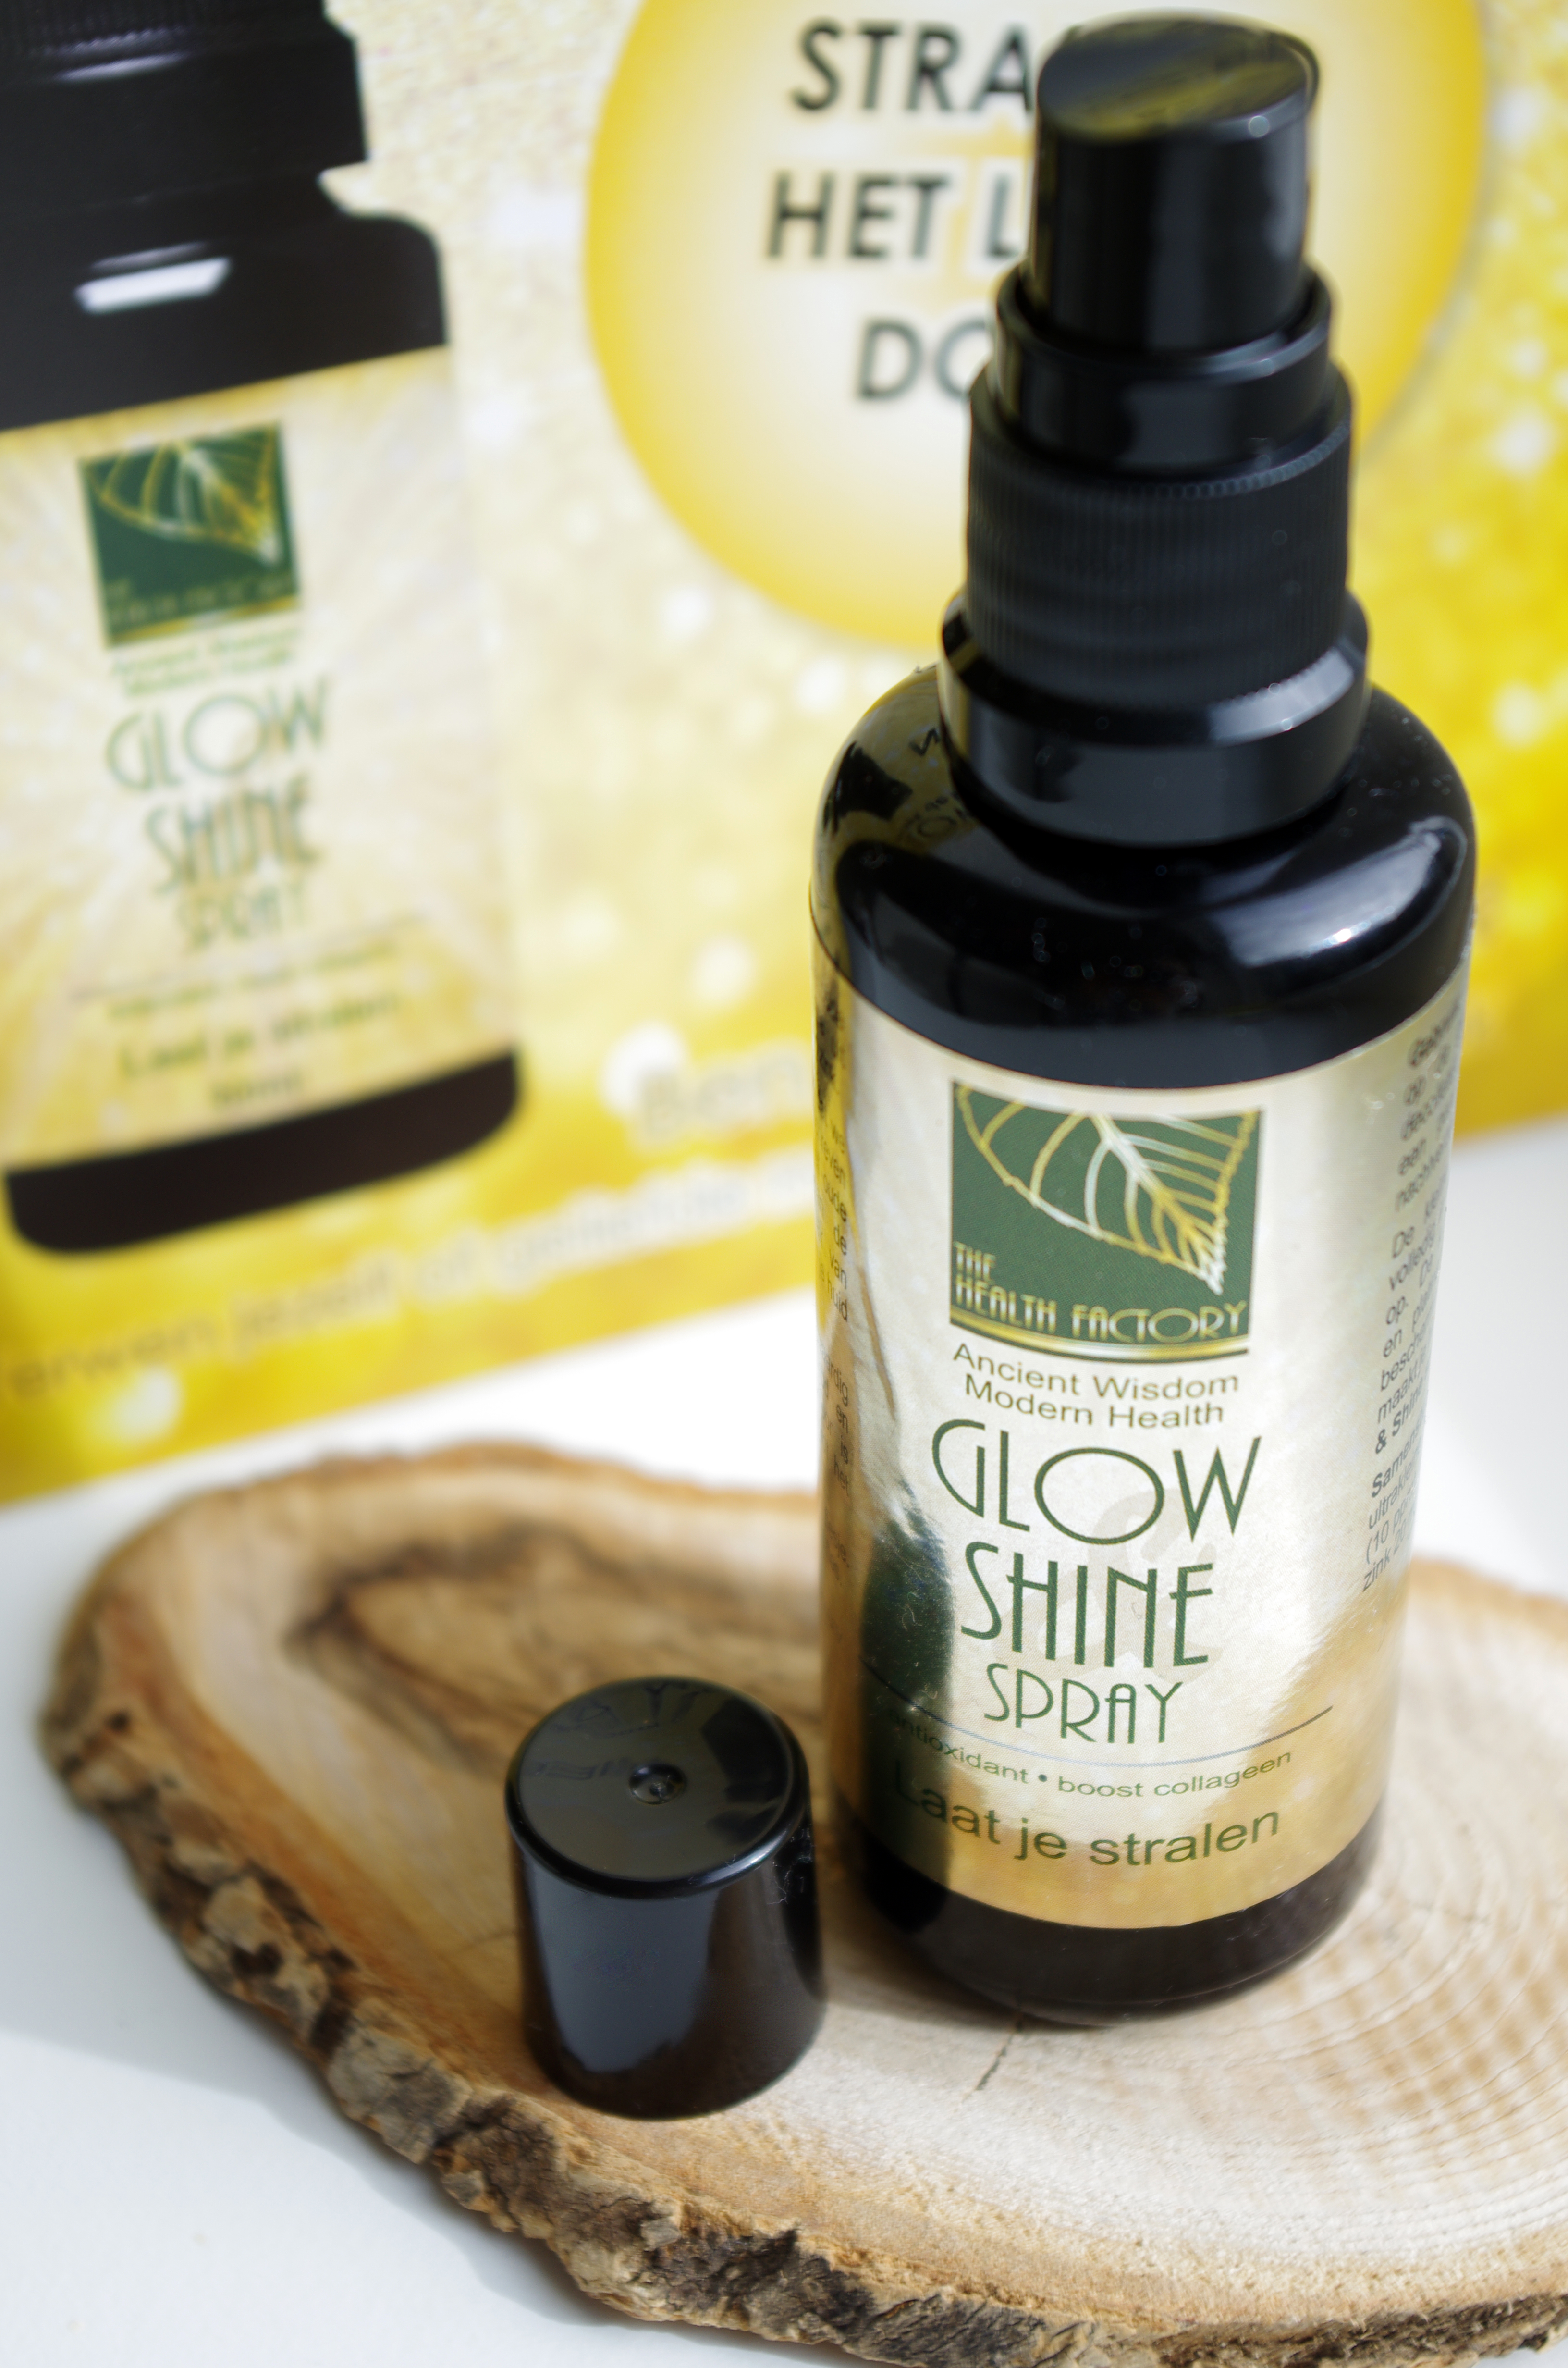 glow & shine spray